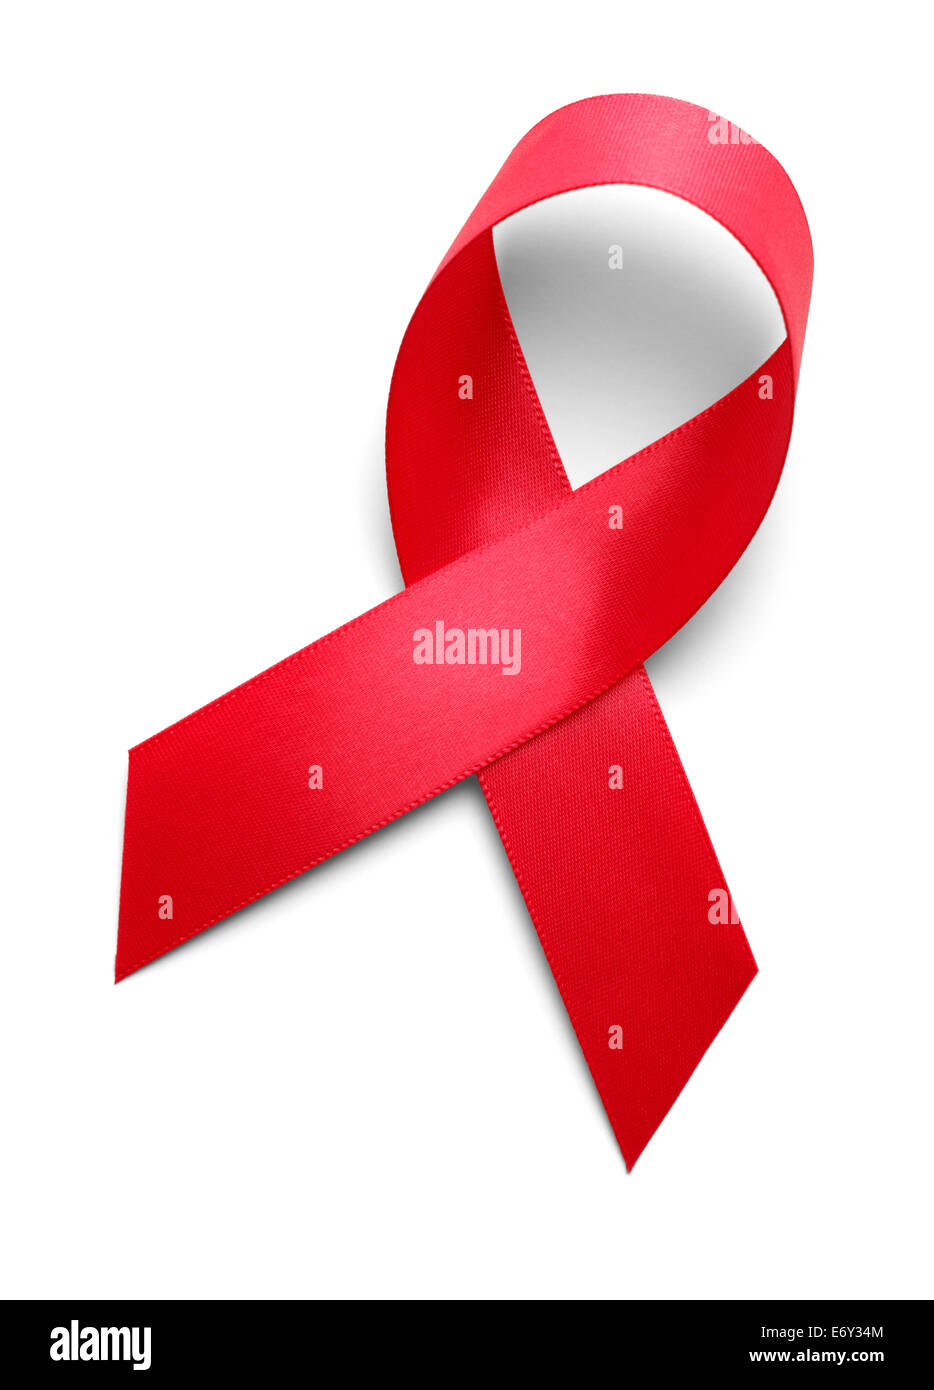 Red Ribbon Isolated on White Background. - Stock Image